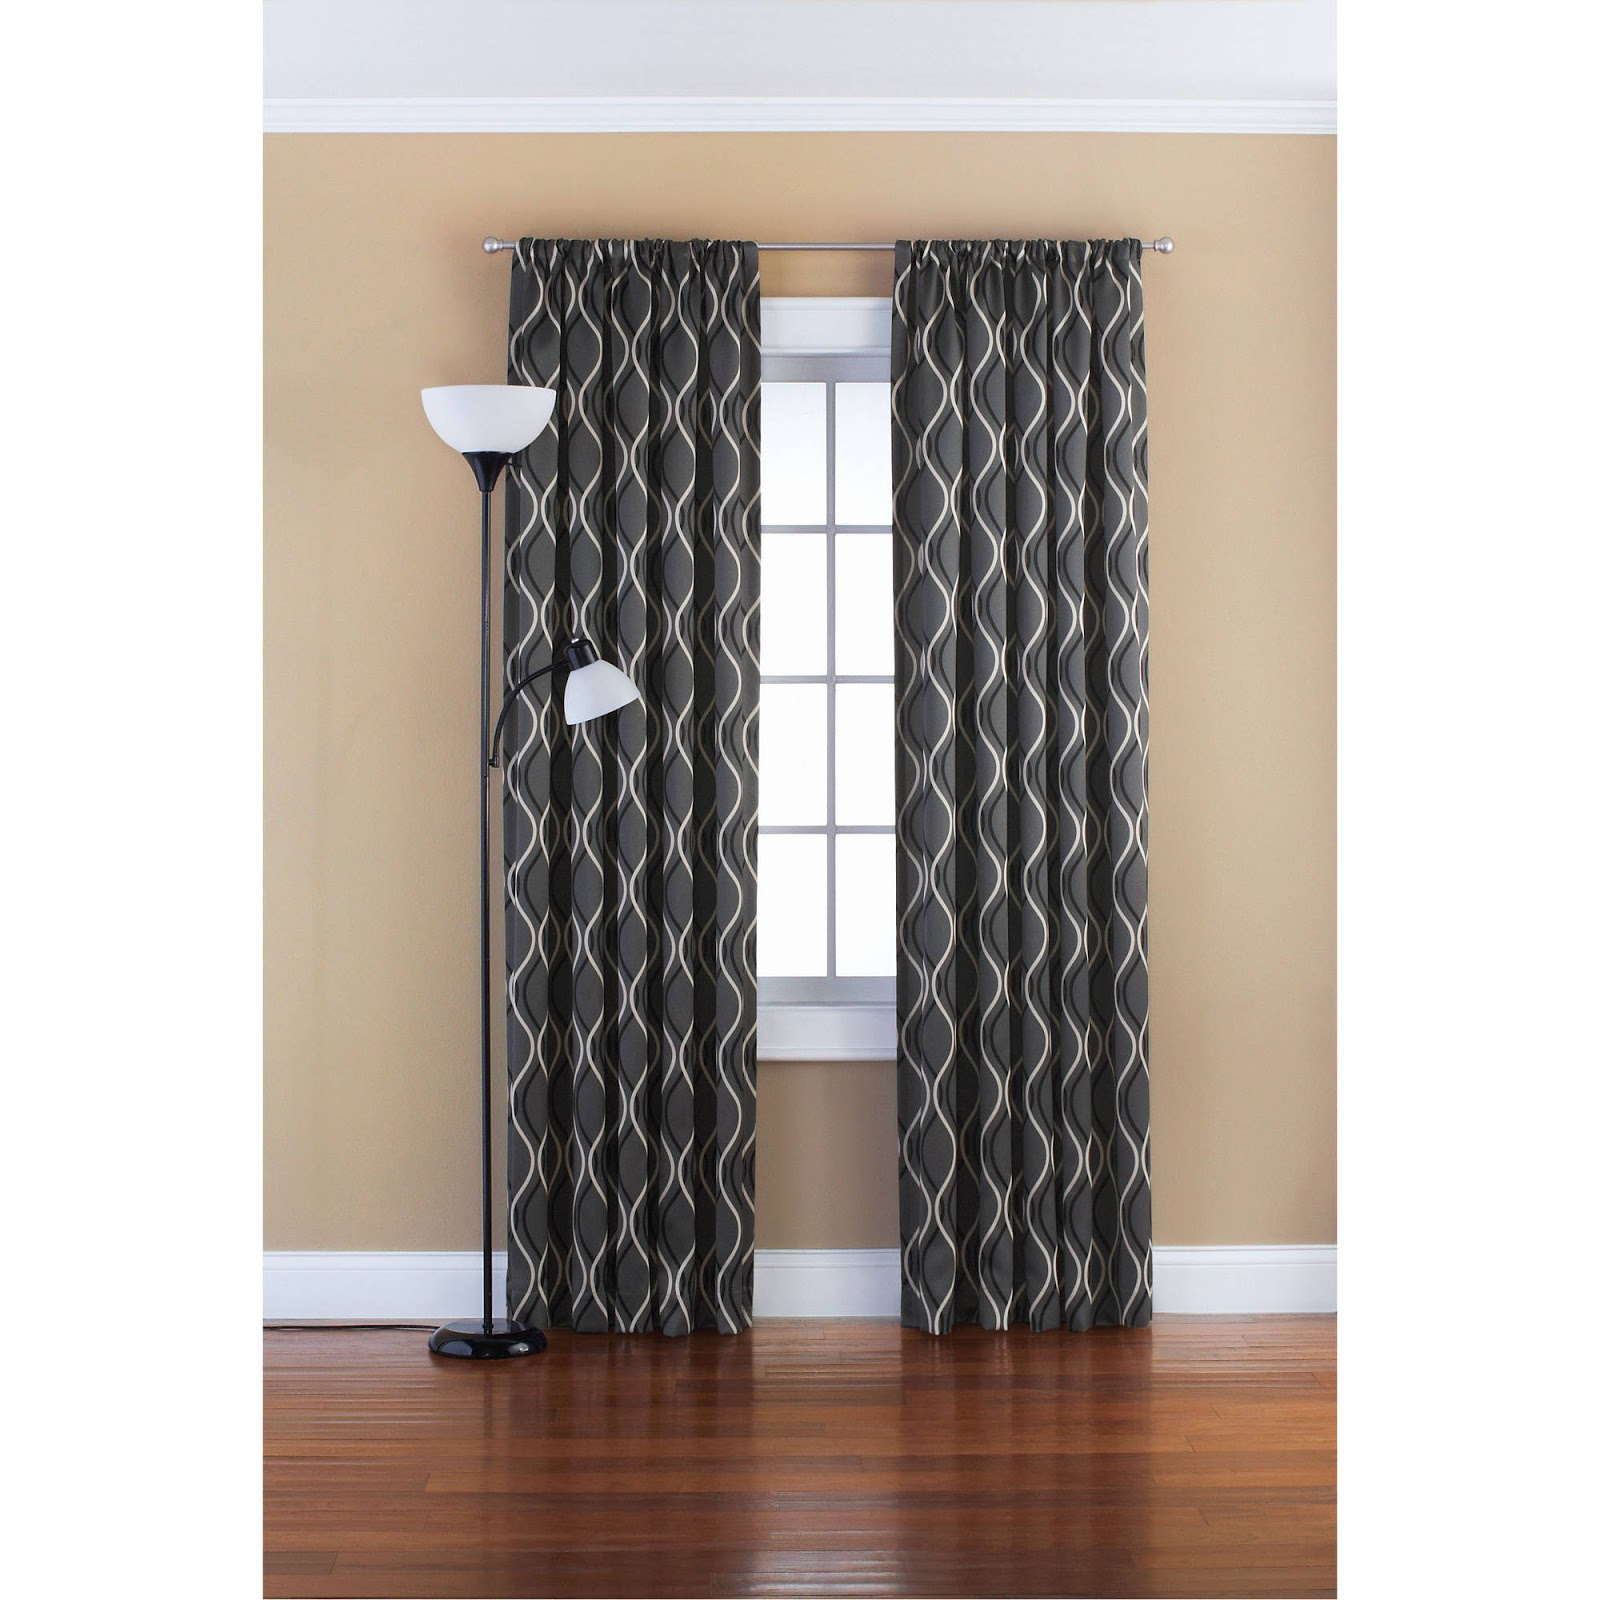 Double Rod Curtain Rods Curtains For Pocket Sheer